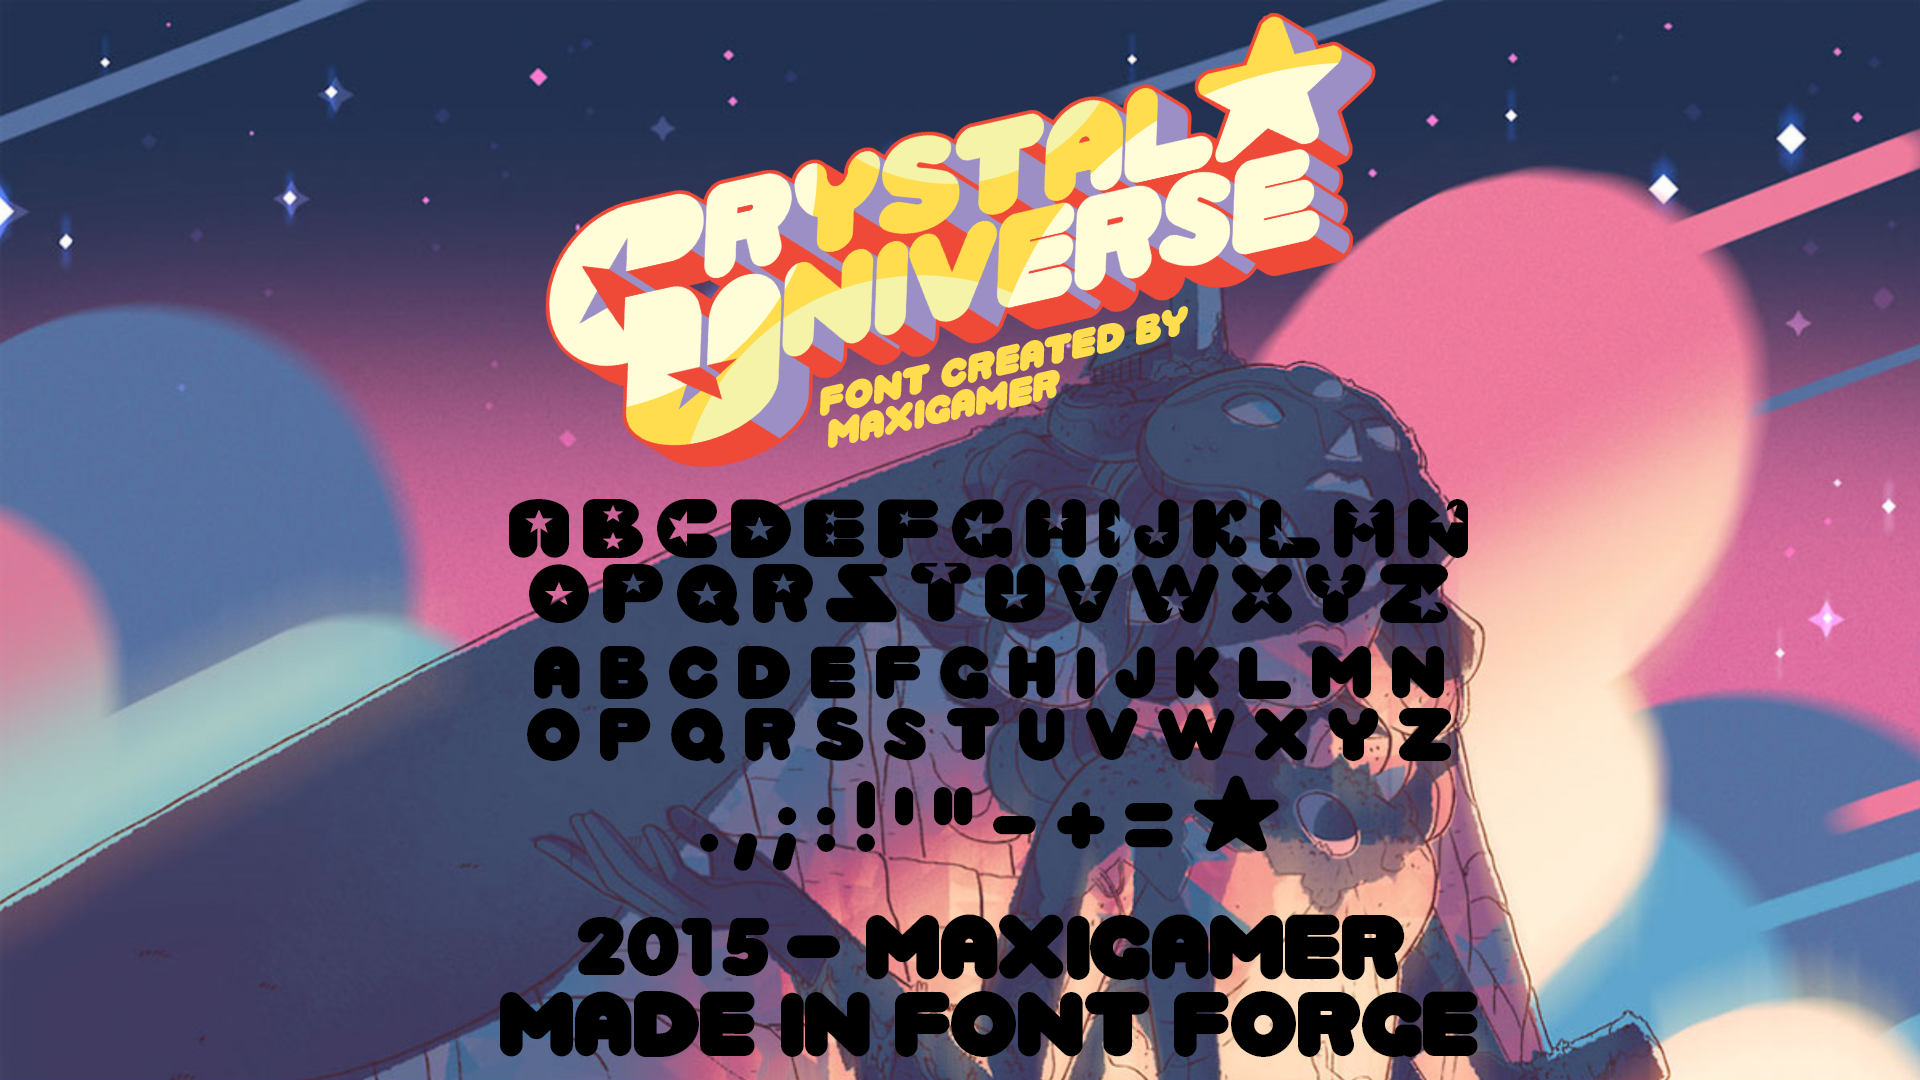 Crystal Universe FONT by MaxiGamer on DeviantArt